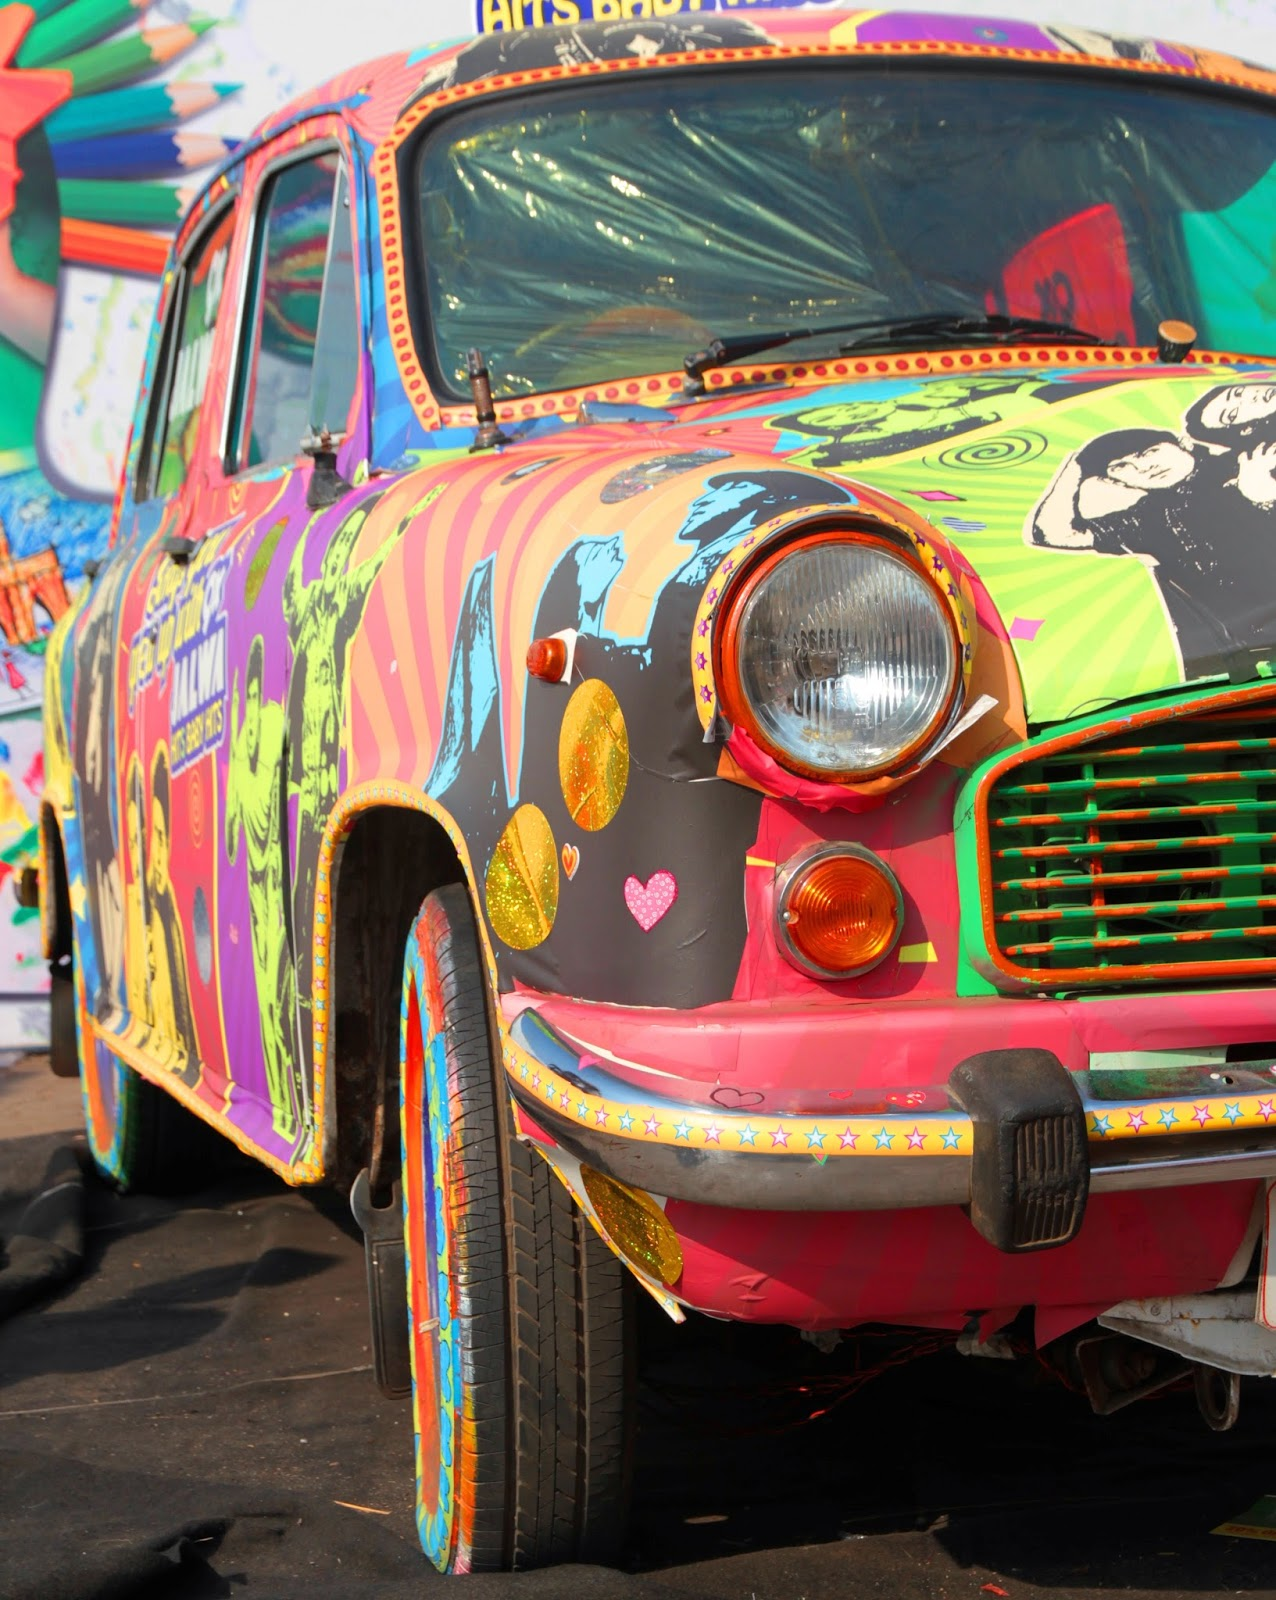 bollywood car, kala ghoda, ambasador, art car, mumbai, india